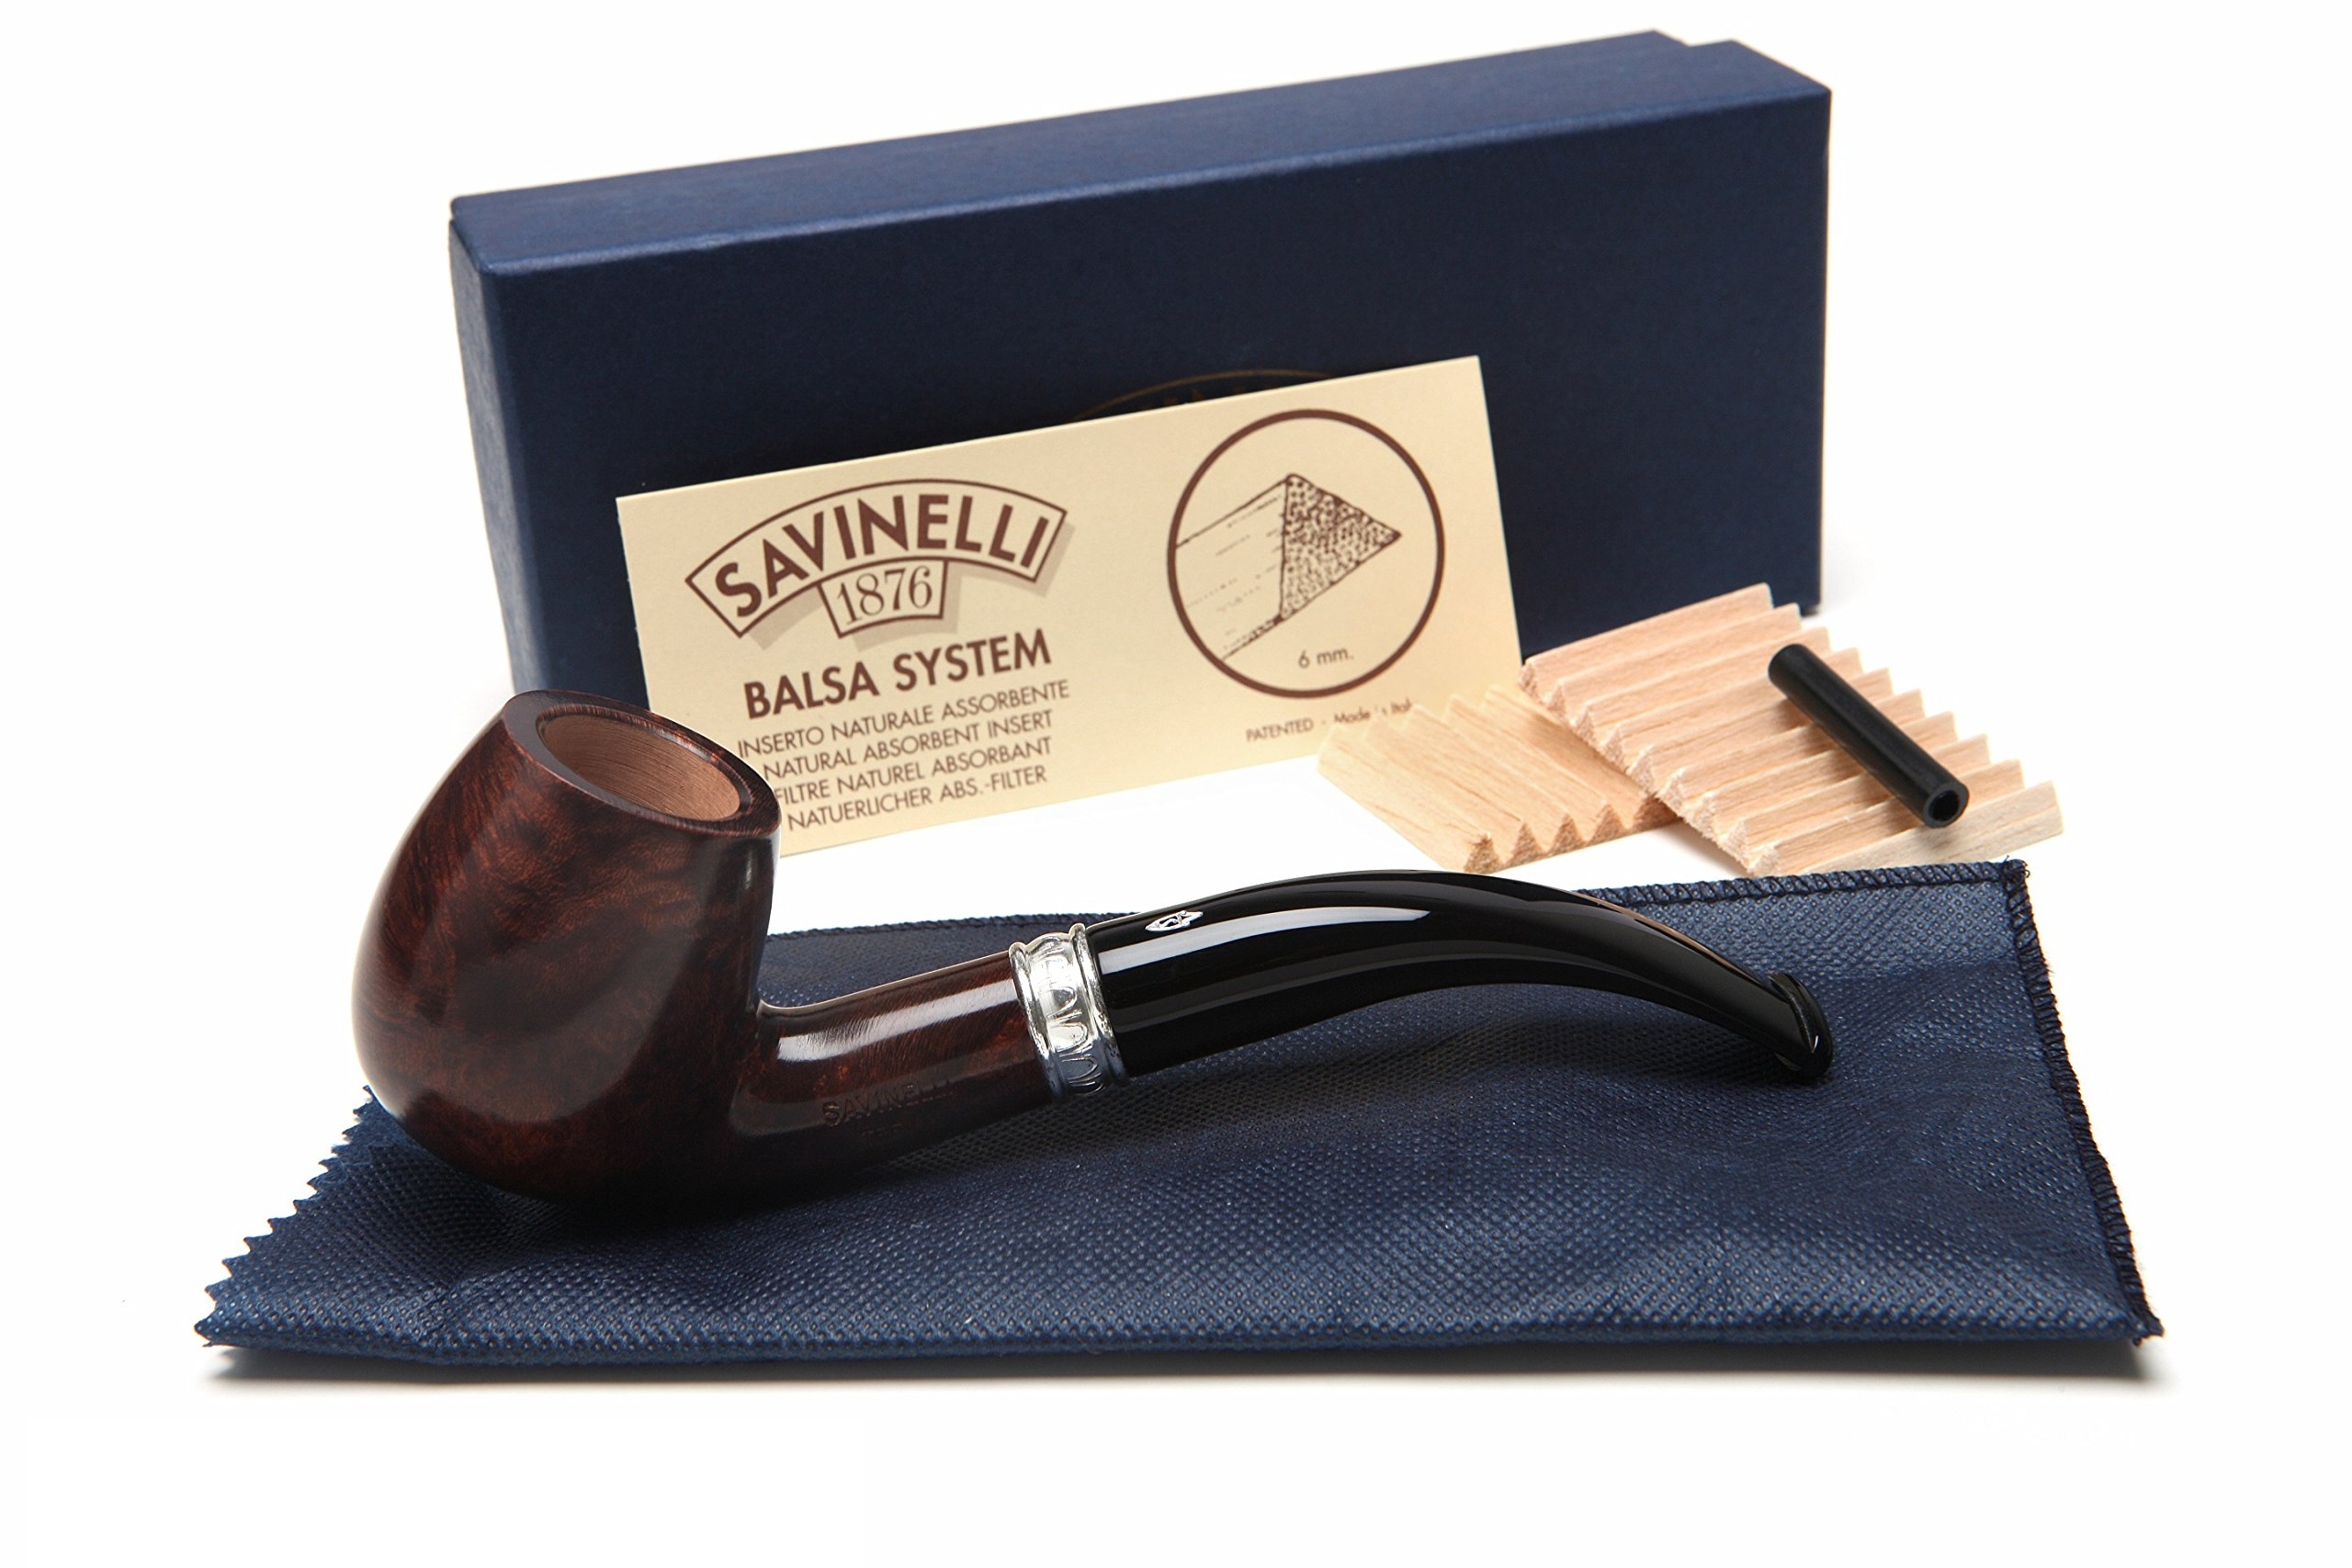 Savinelli Trevi Smooth 602 Tobacco Pipe by Savinelli